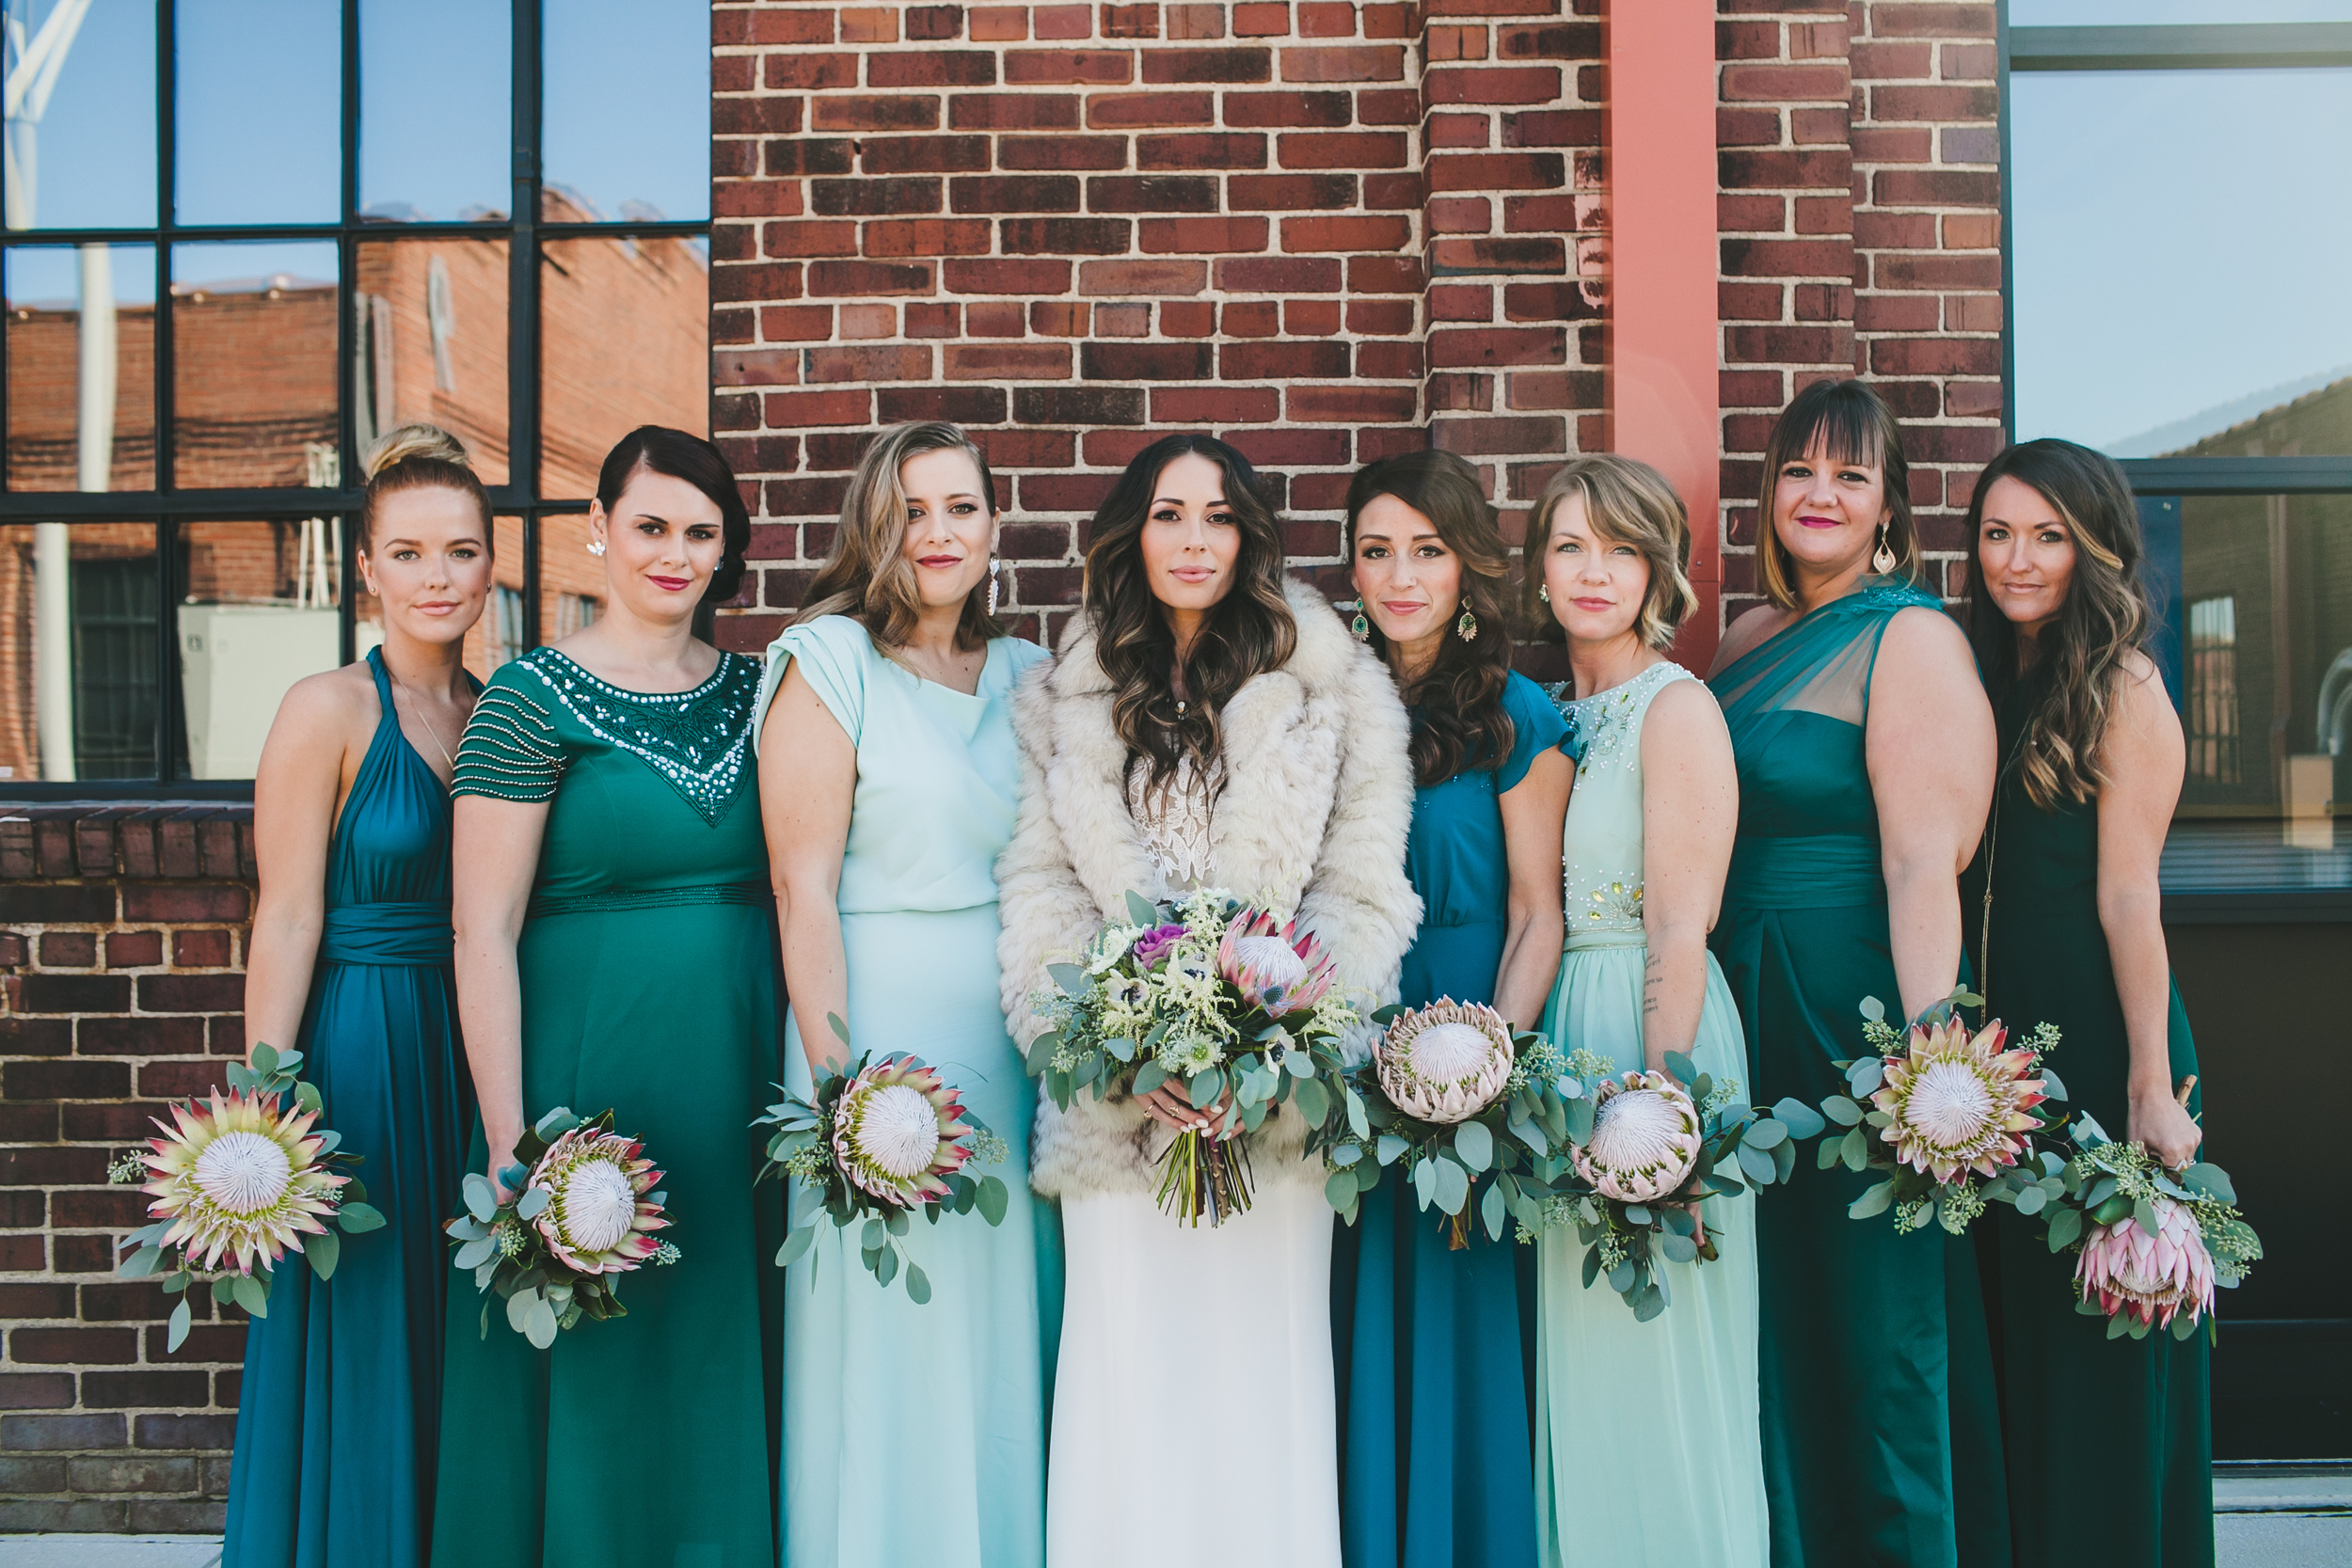 Kneale_Wedding_Bridesmaid_Flowers